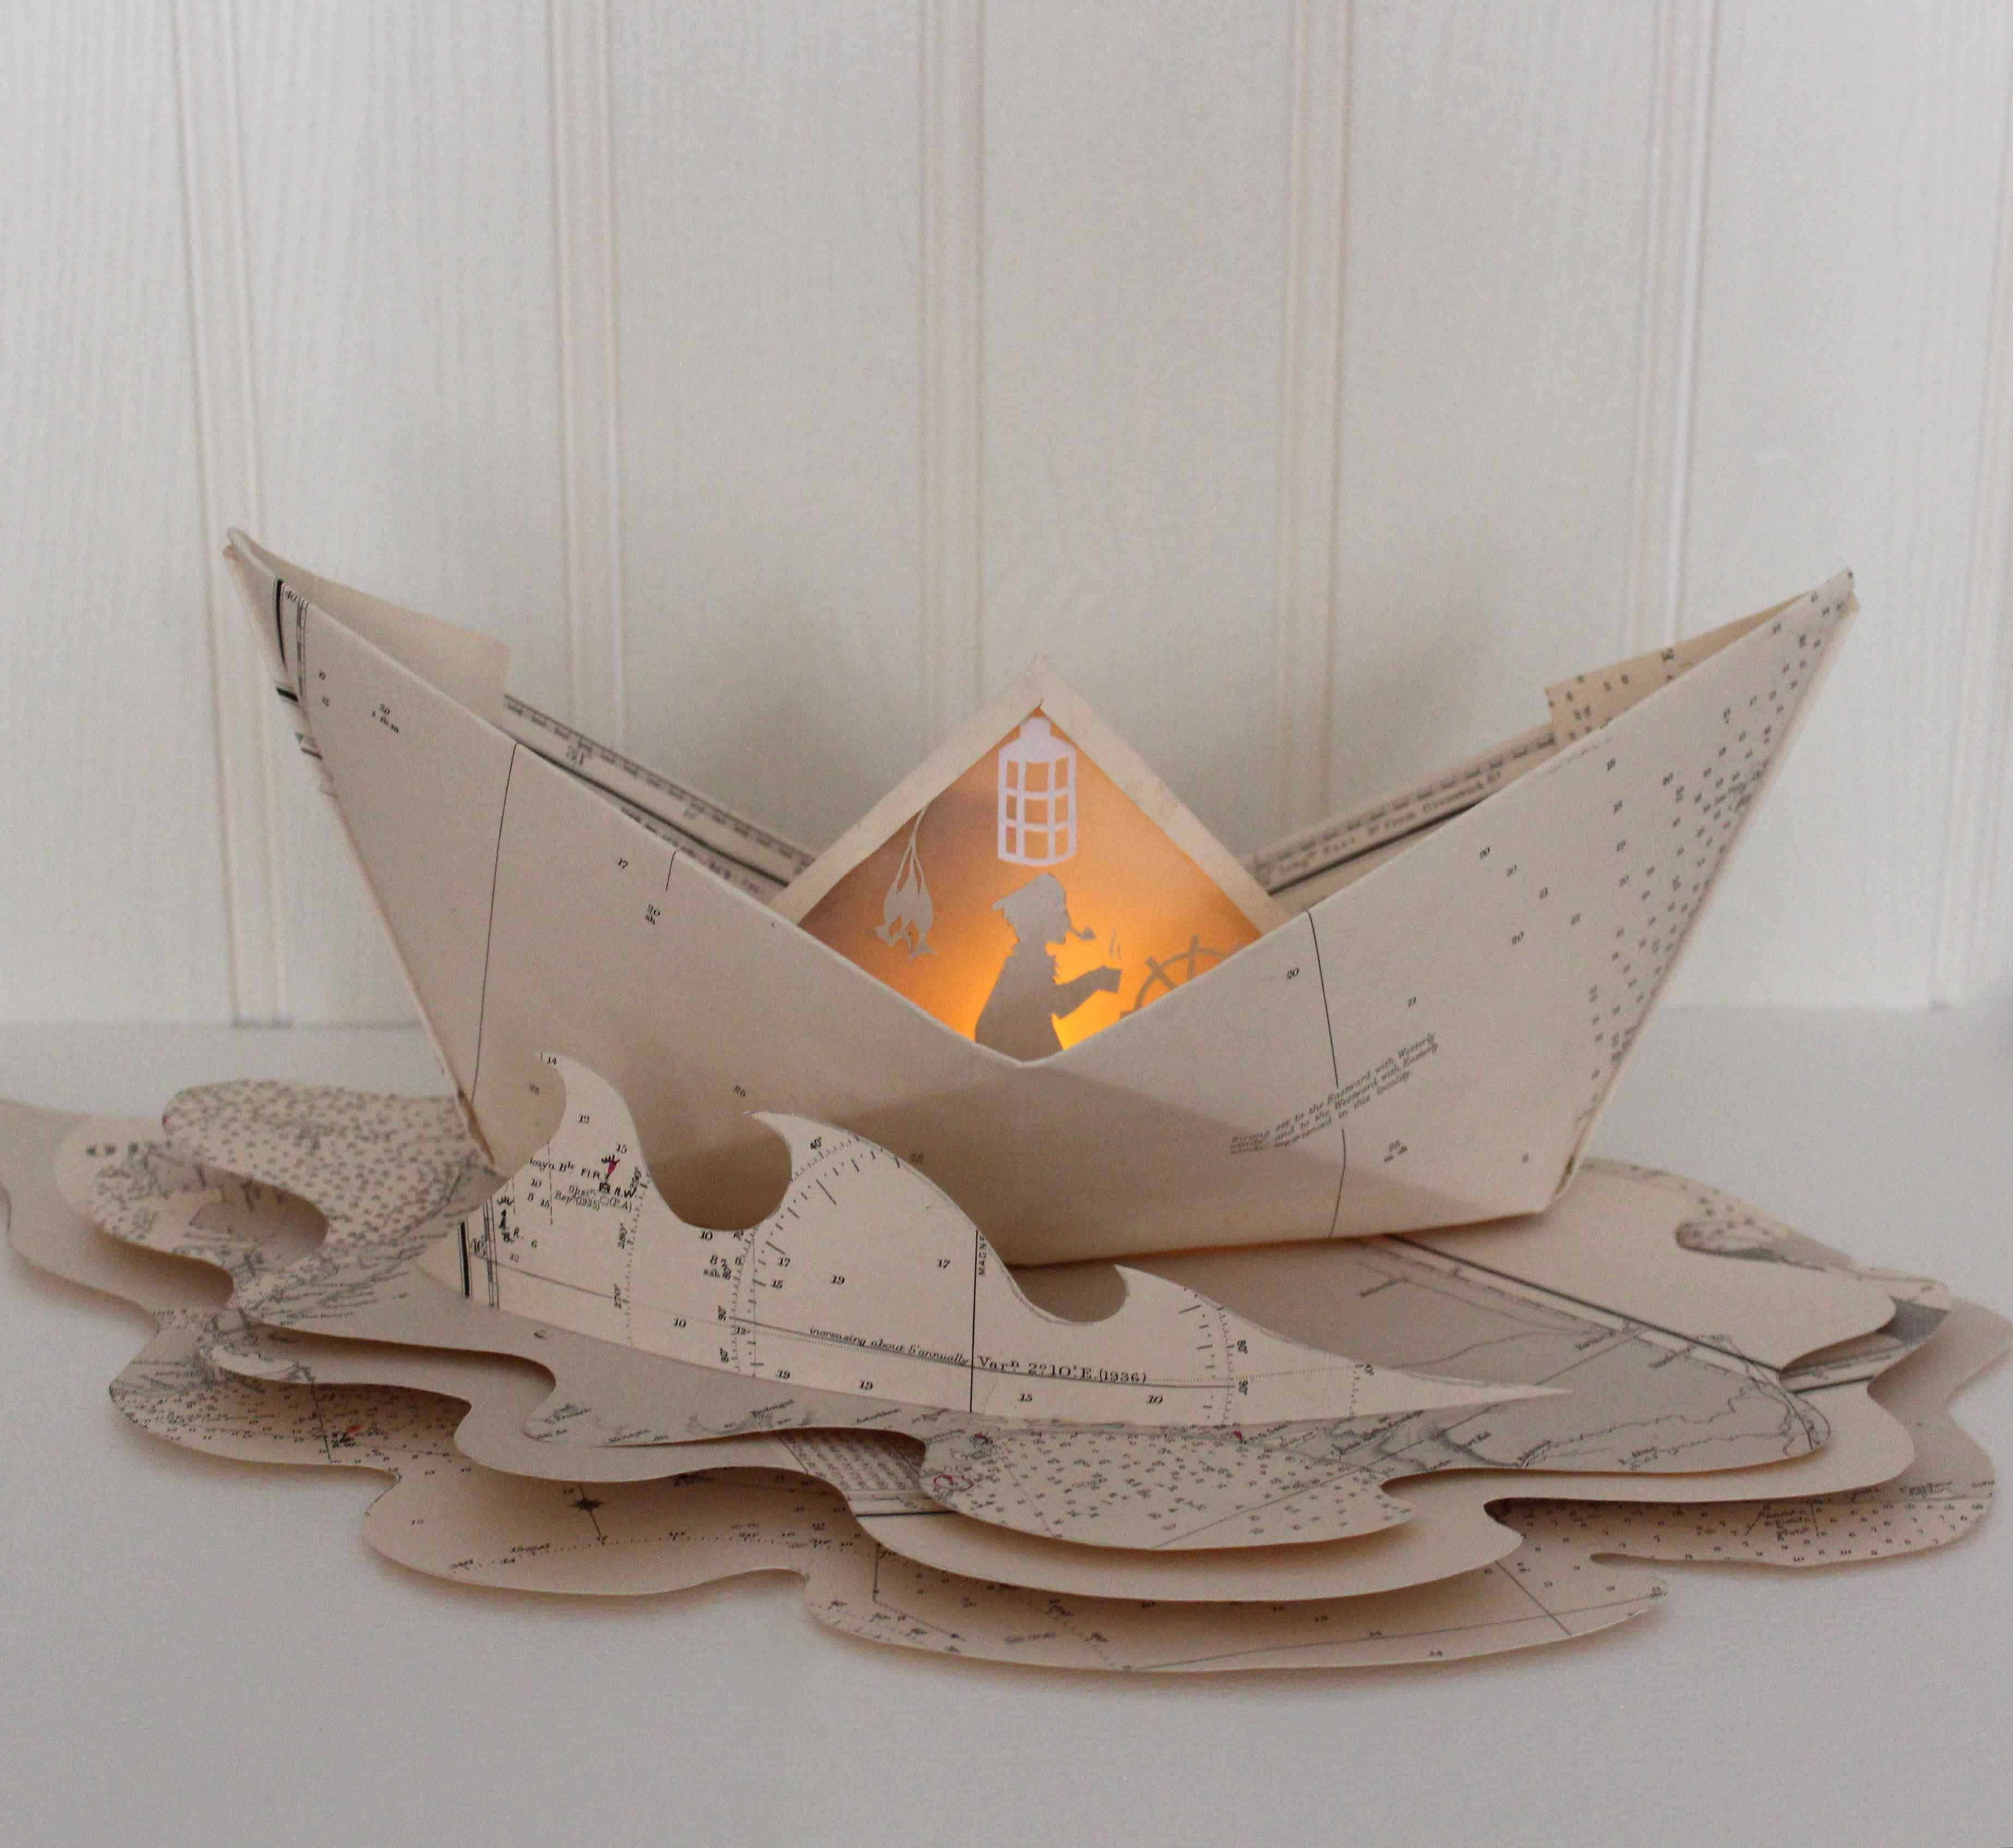 Kate Shows How To Make A Paper Boat Luminary Paper Craft Tutorials